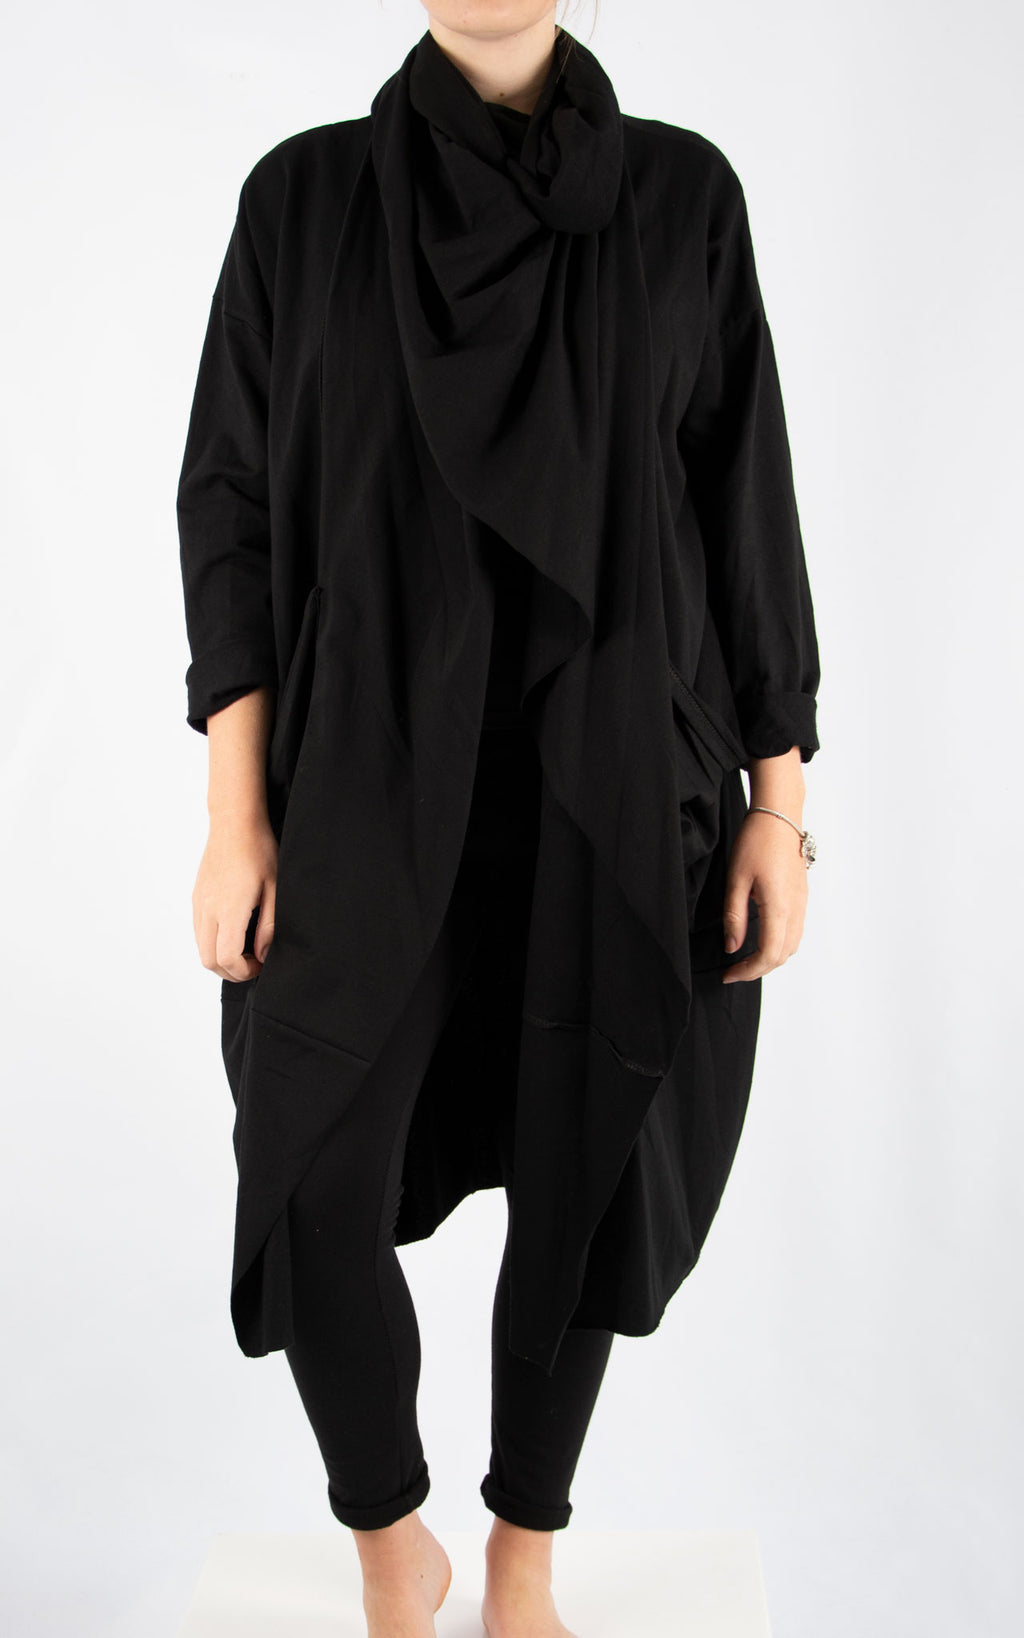 Black Cowl Neck Oversized Sweater